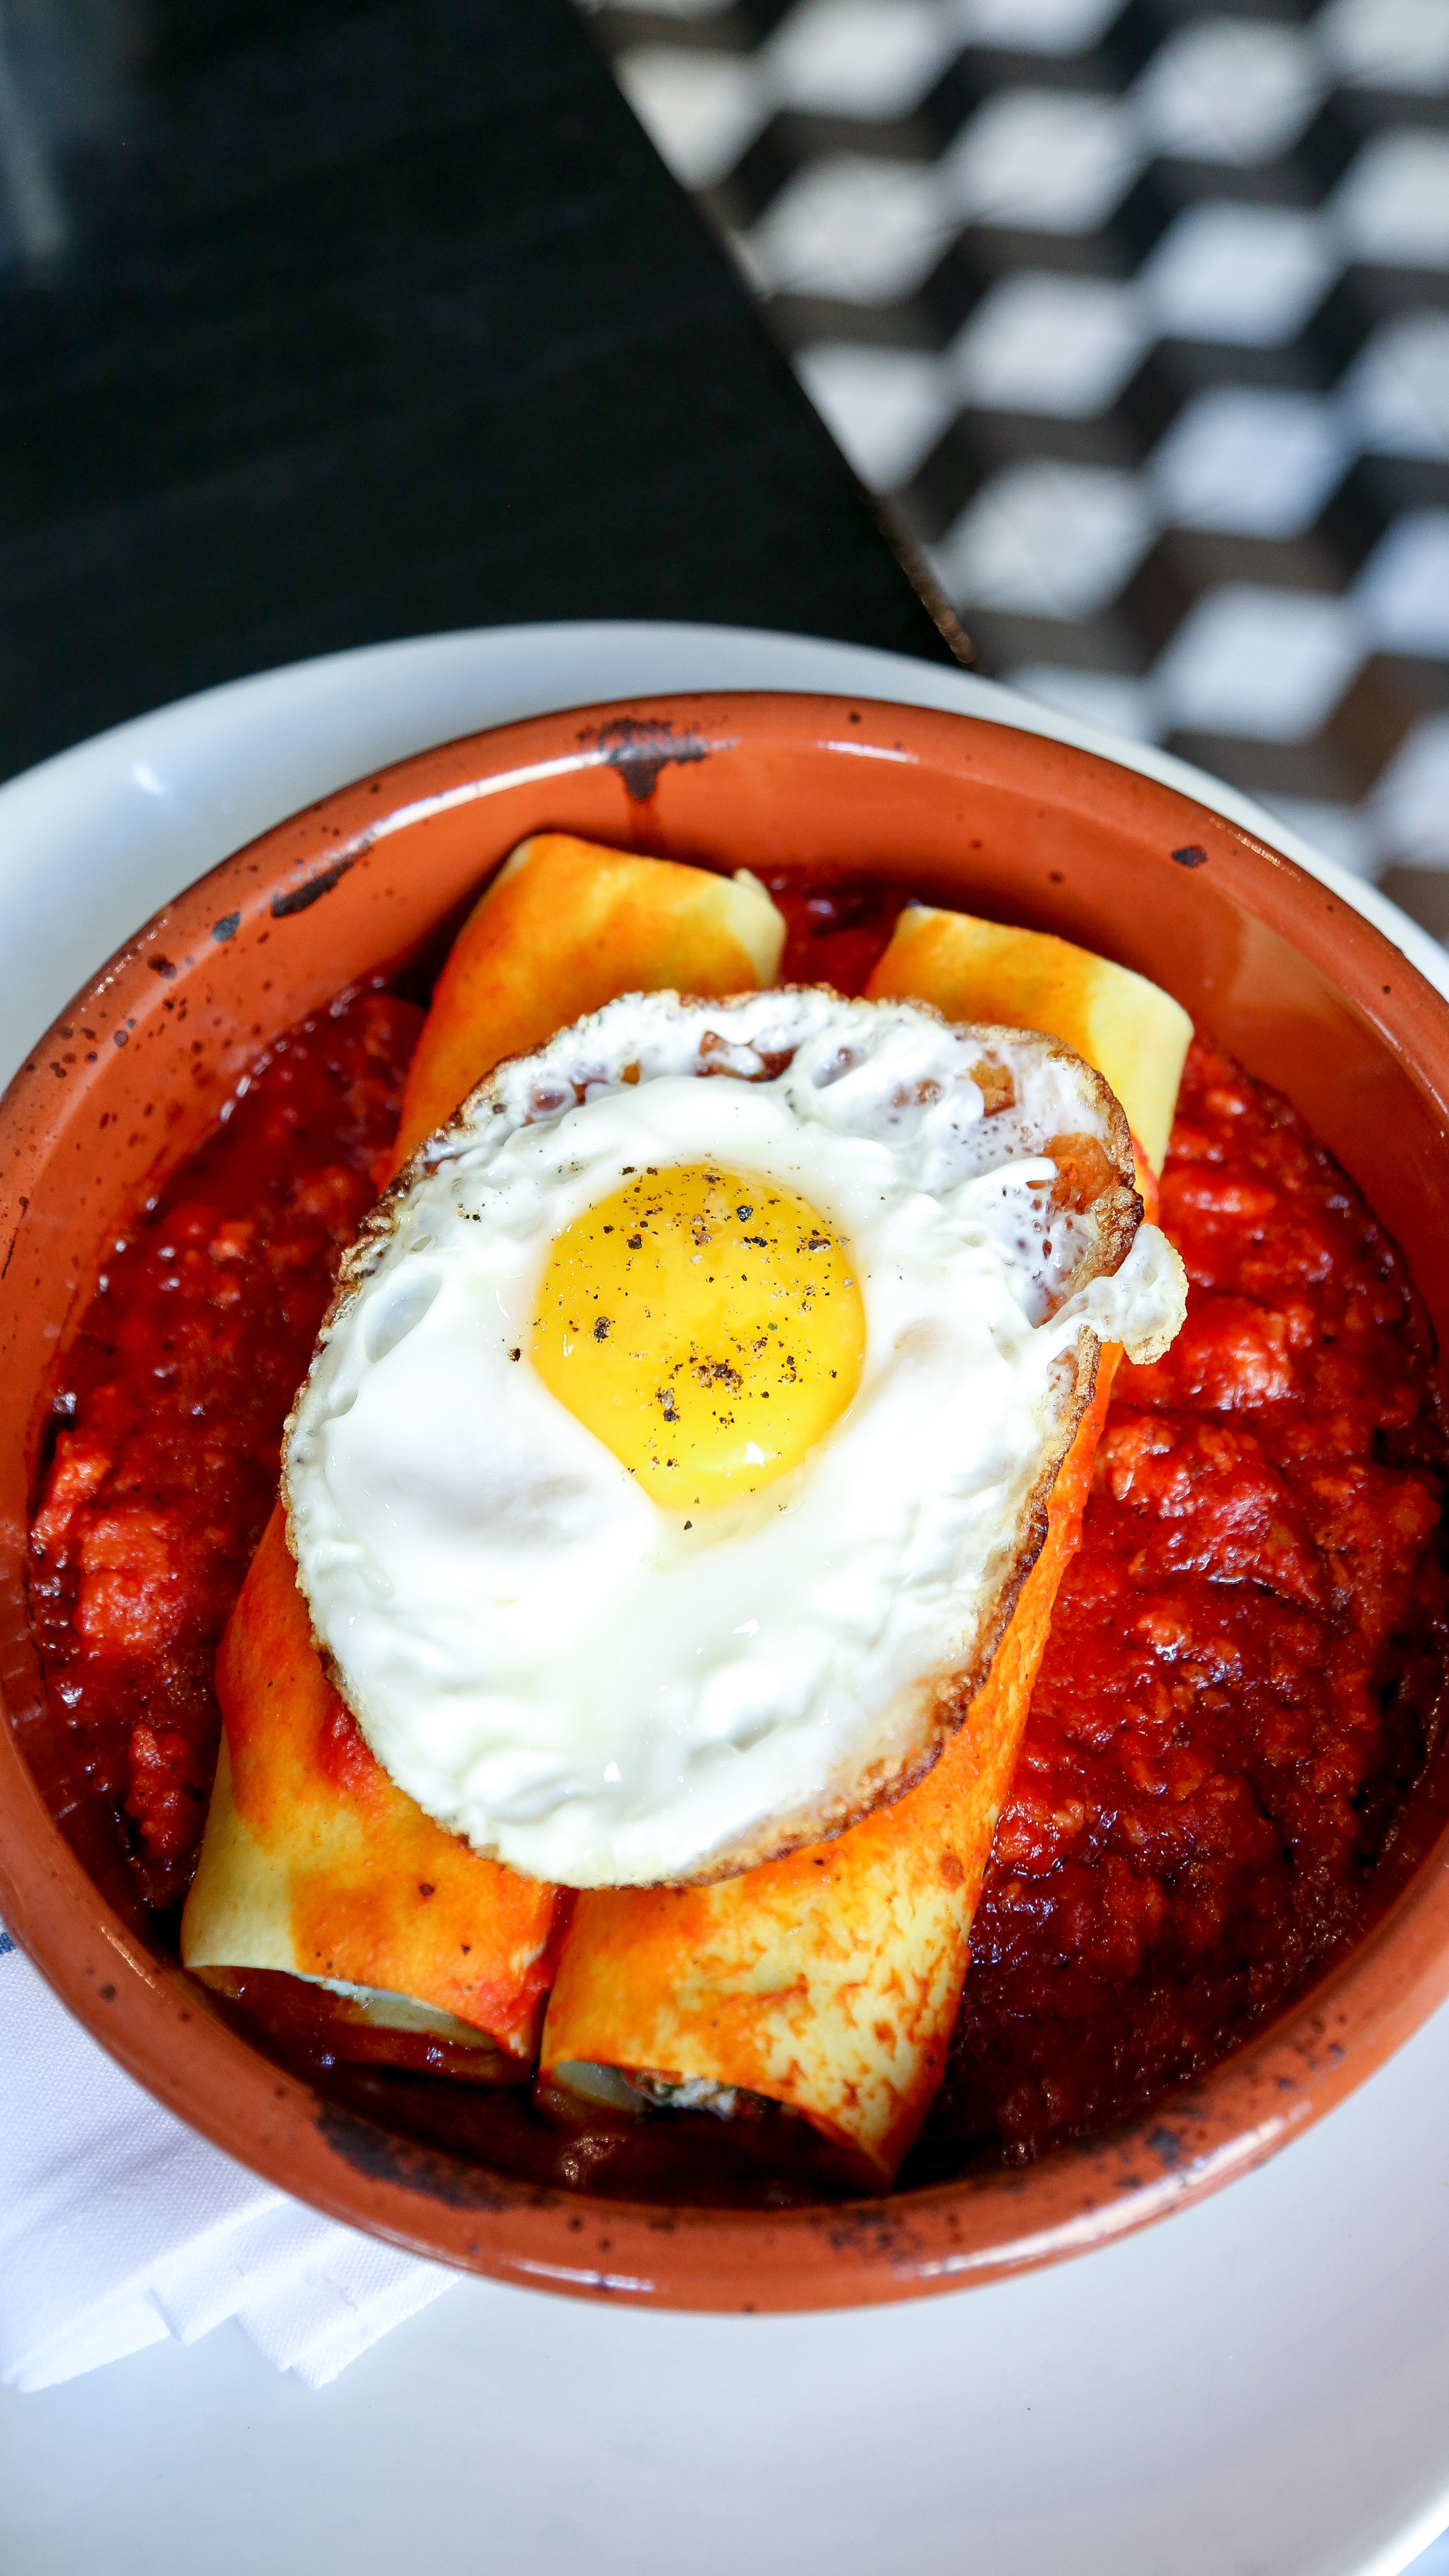 Cannelloni - spinach, ricotta, spicy italian sausage tomato sauce, olive oil fried egg